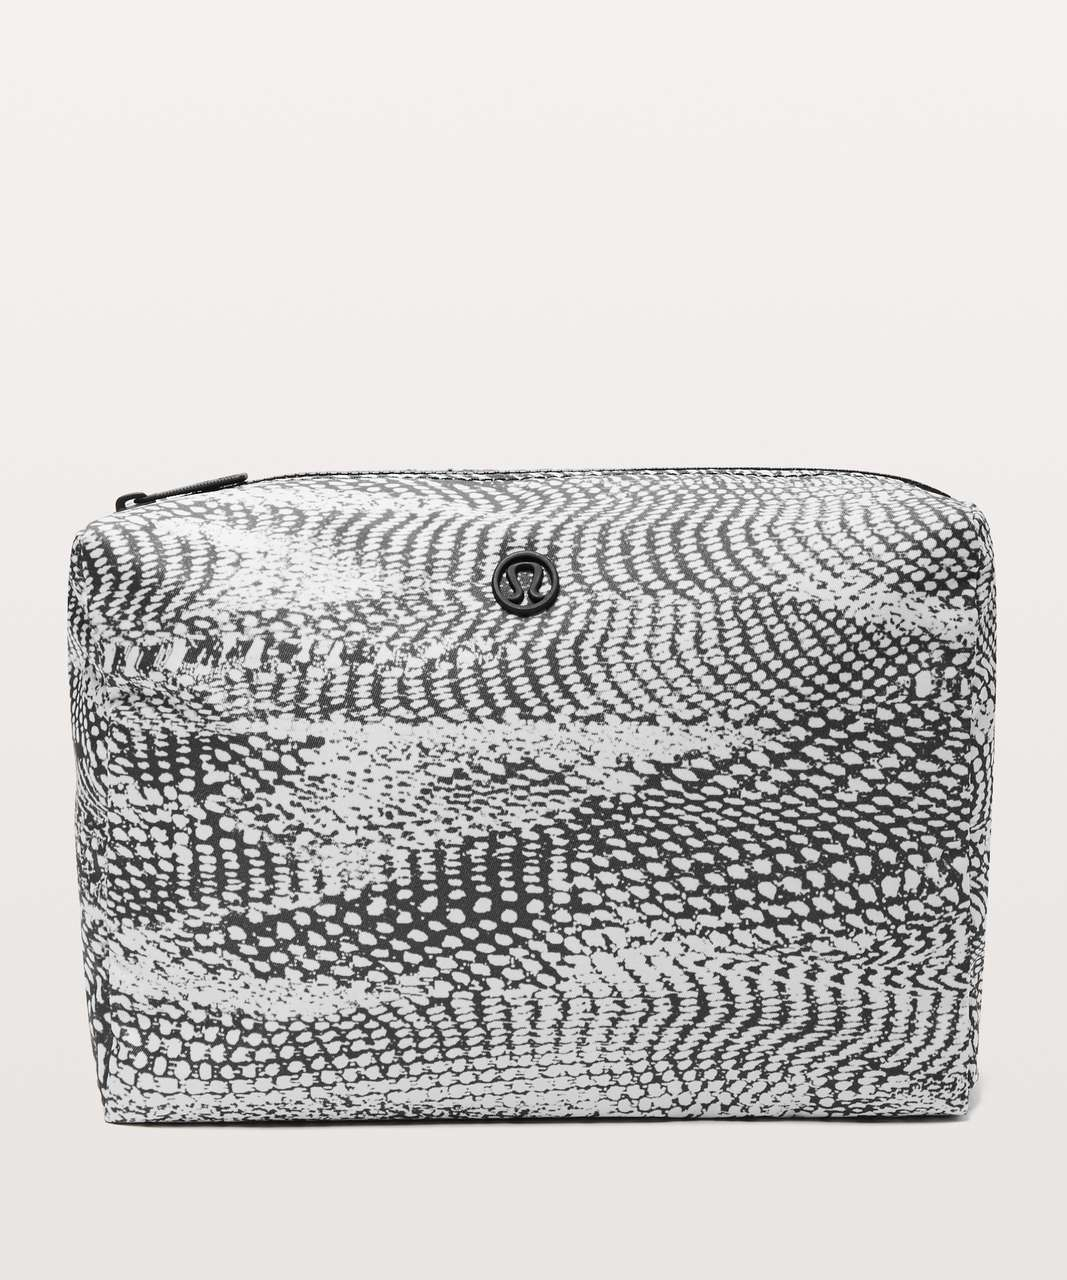 Lululemon All Your Small Things Pouch *4L - Swerve Vapor Metal Grey